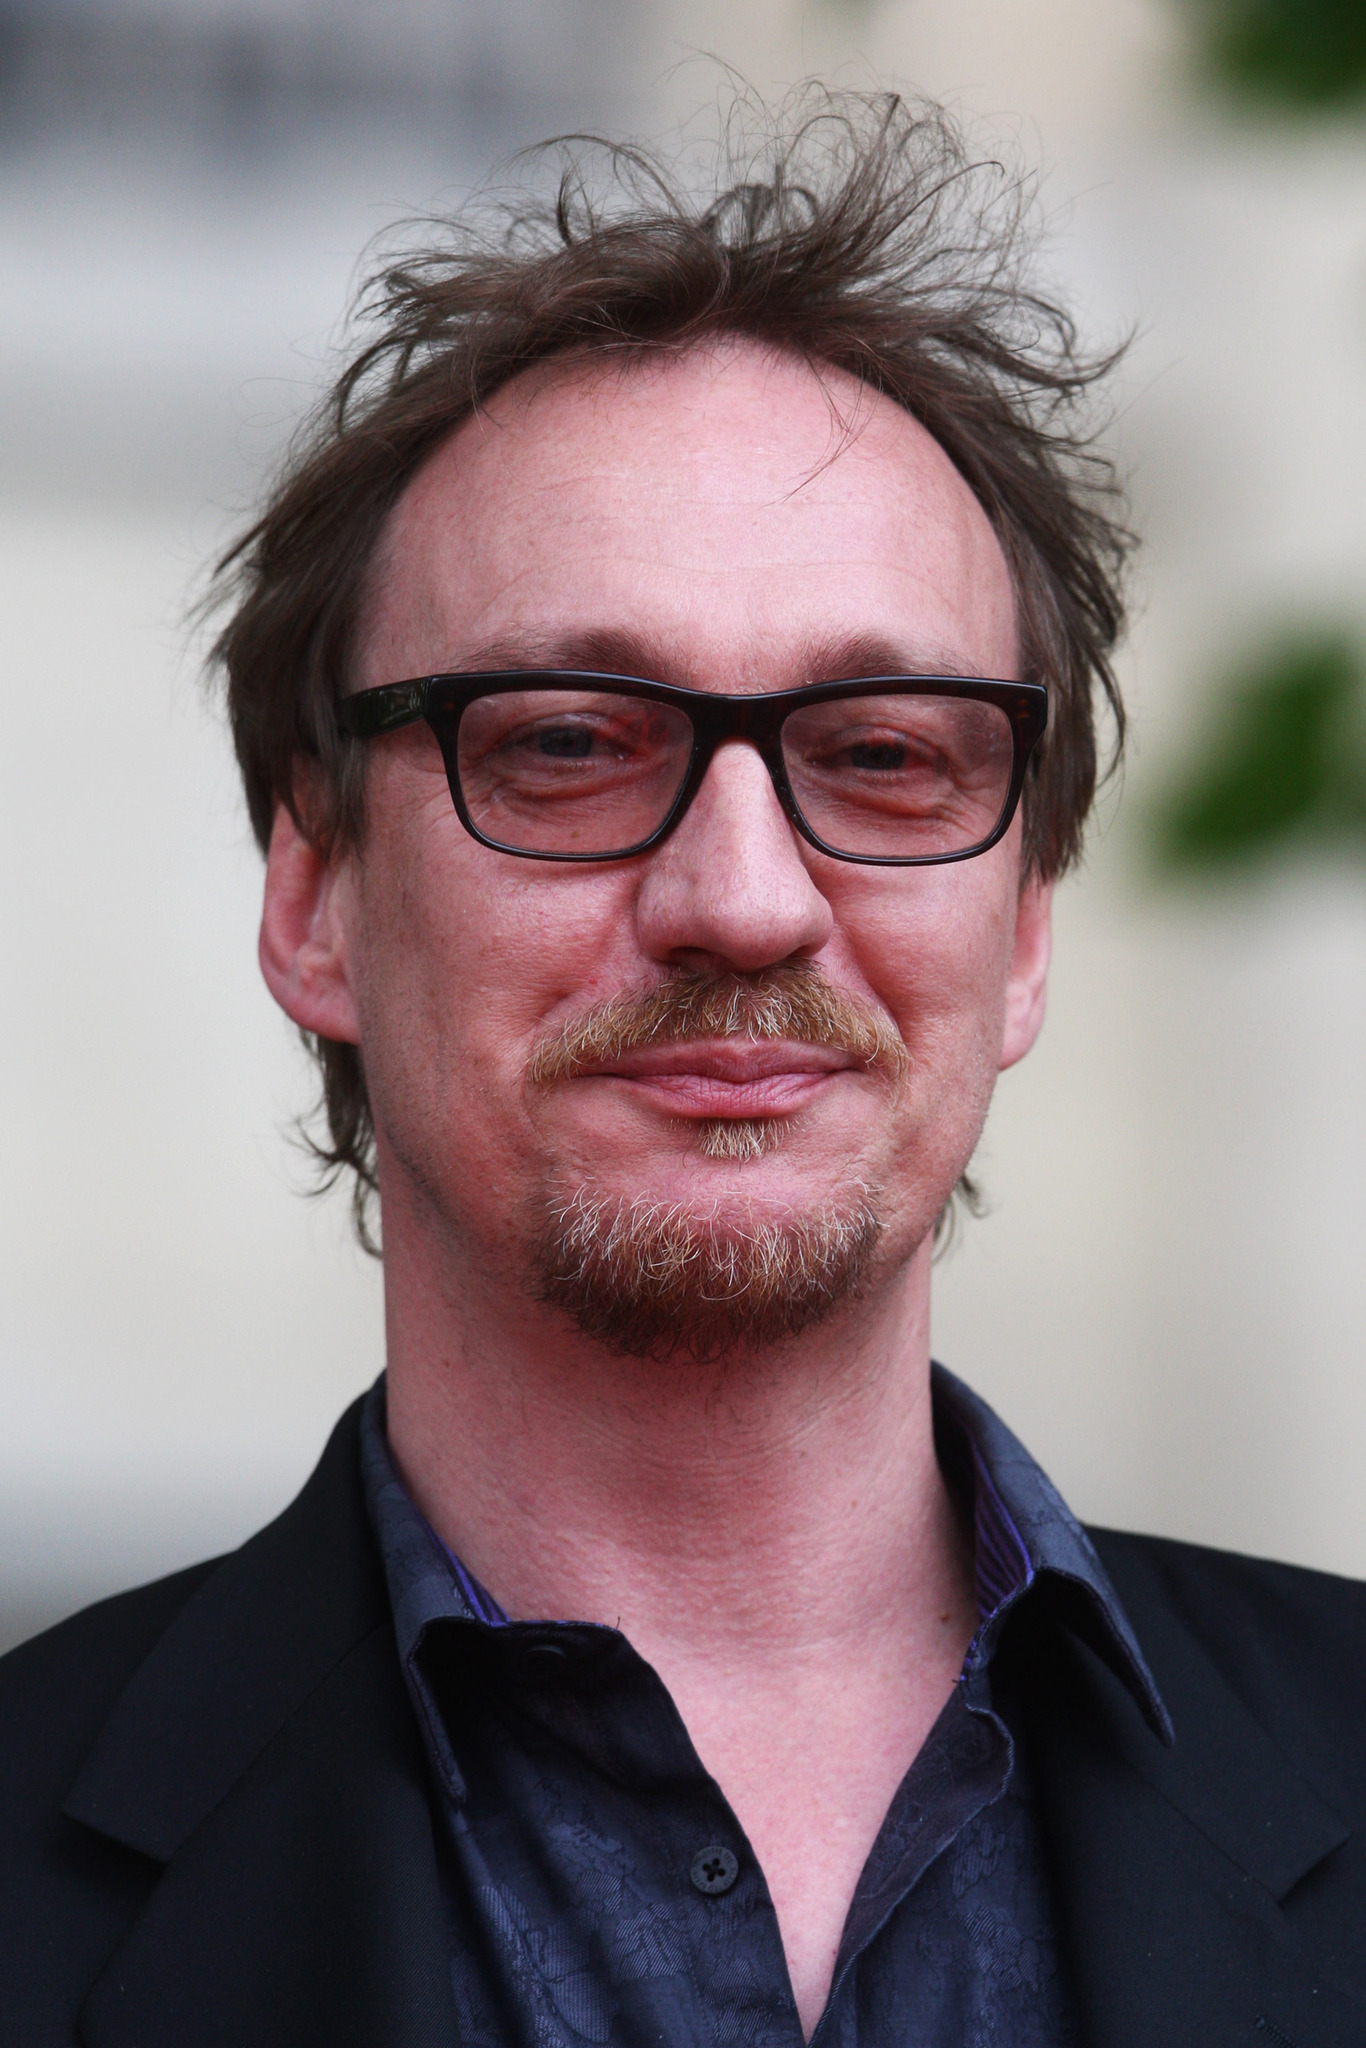 Discussion on this topic: Hildy Brooks, david-thewlis-born-1963/